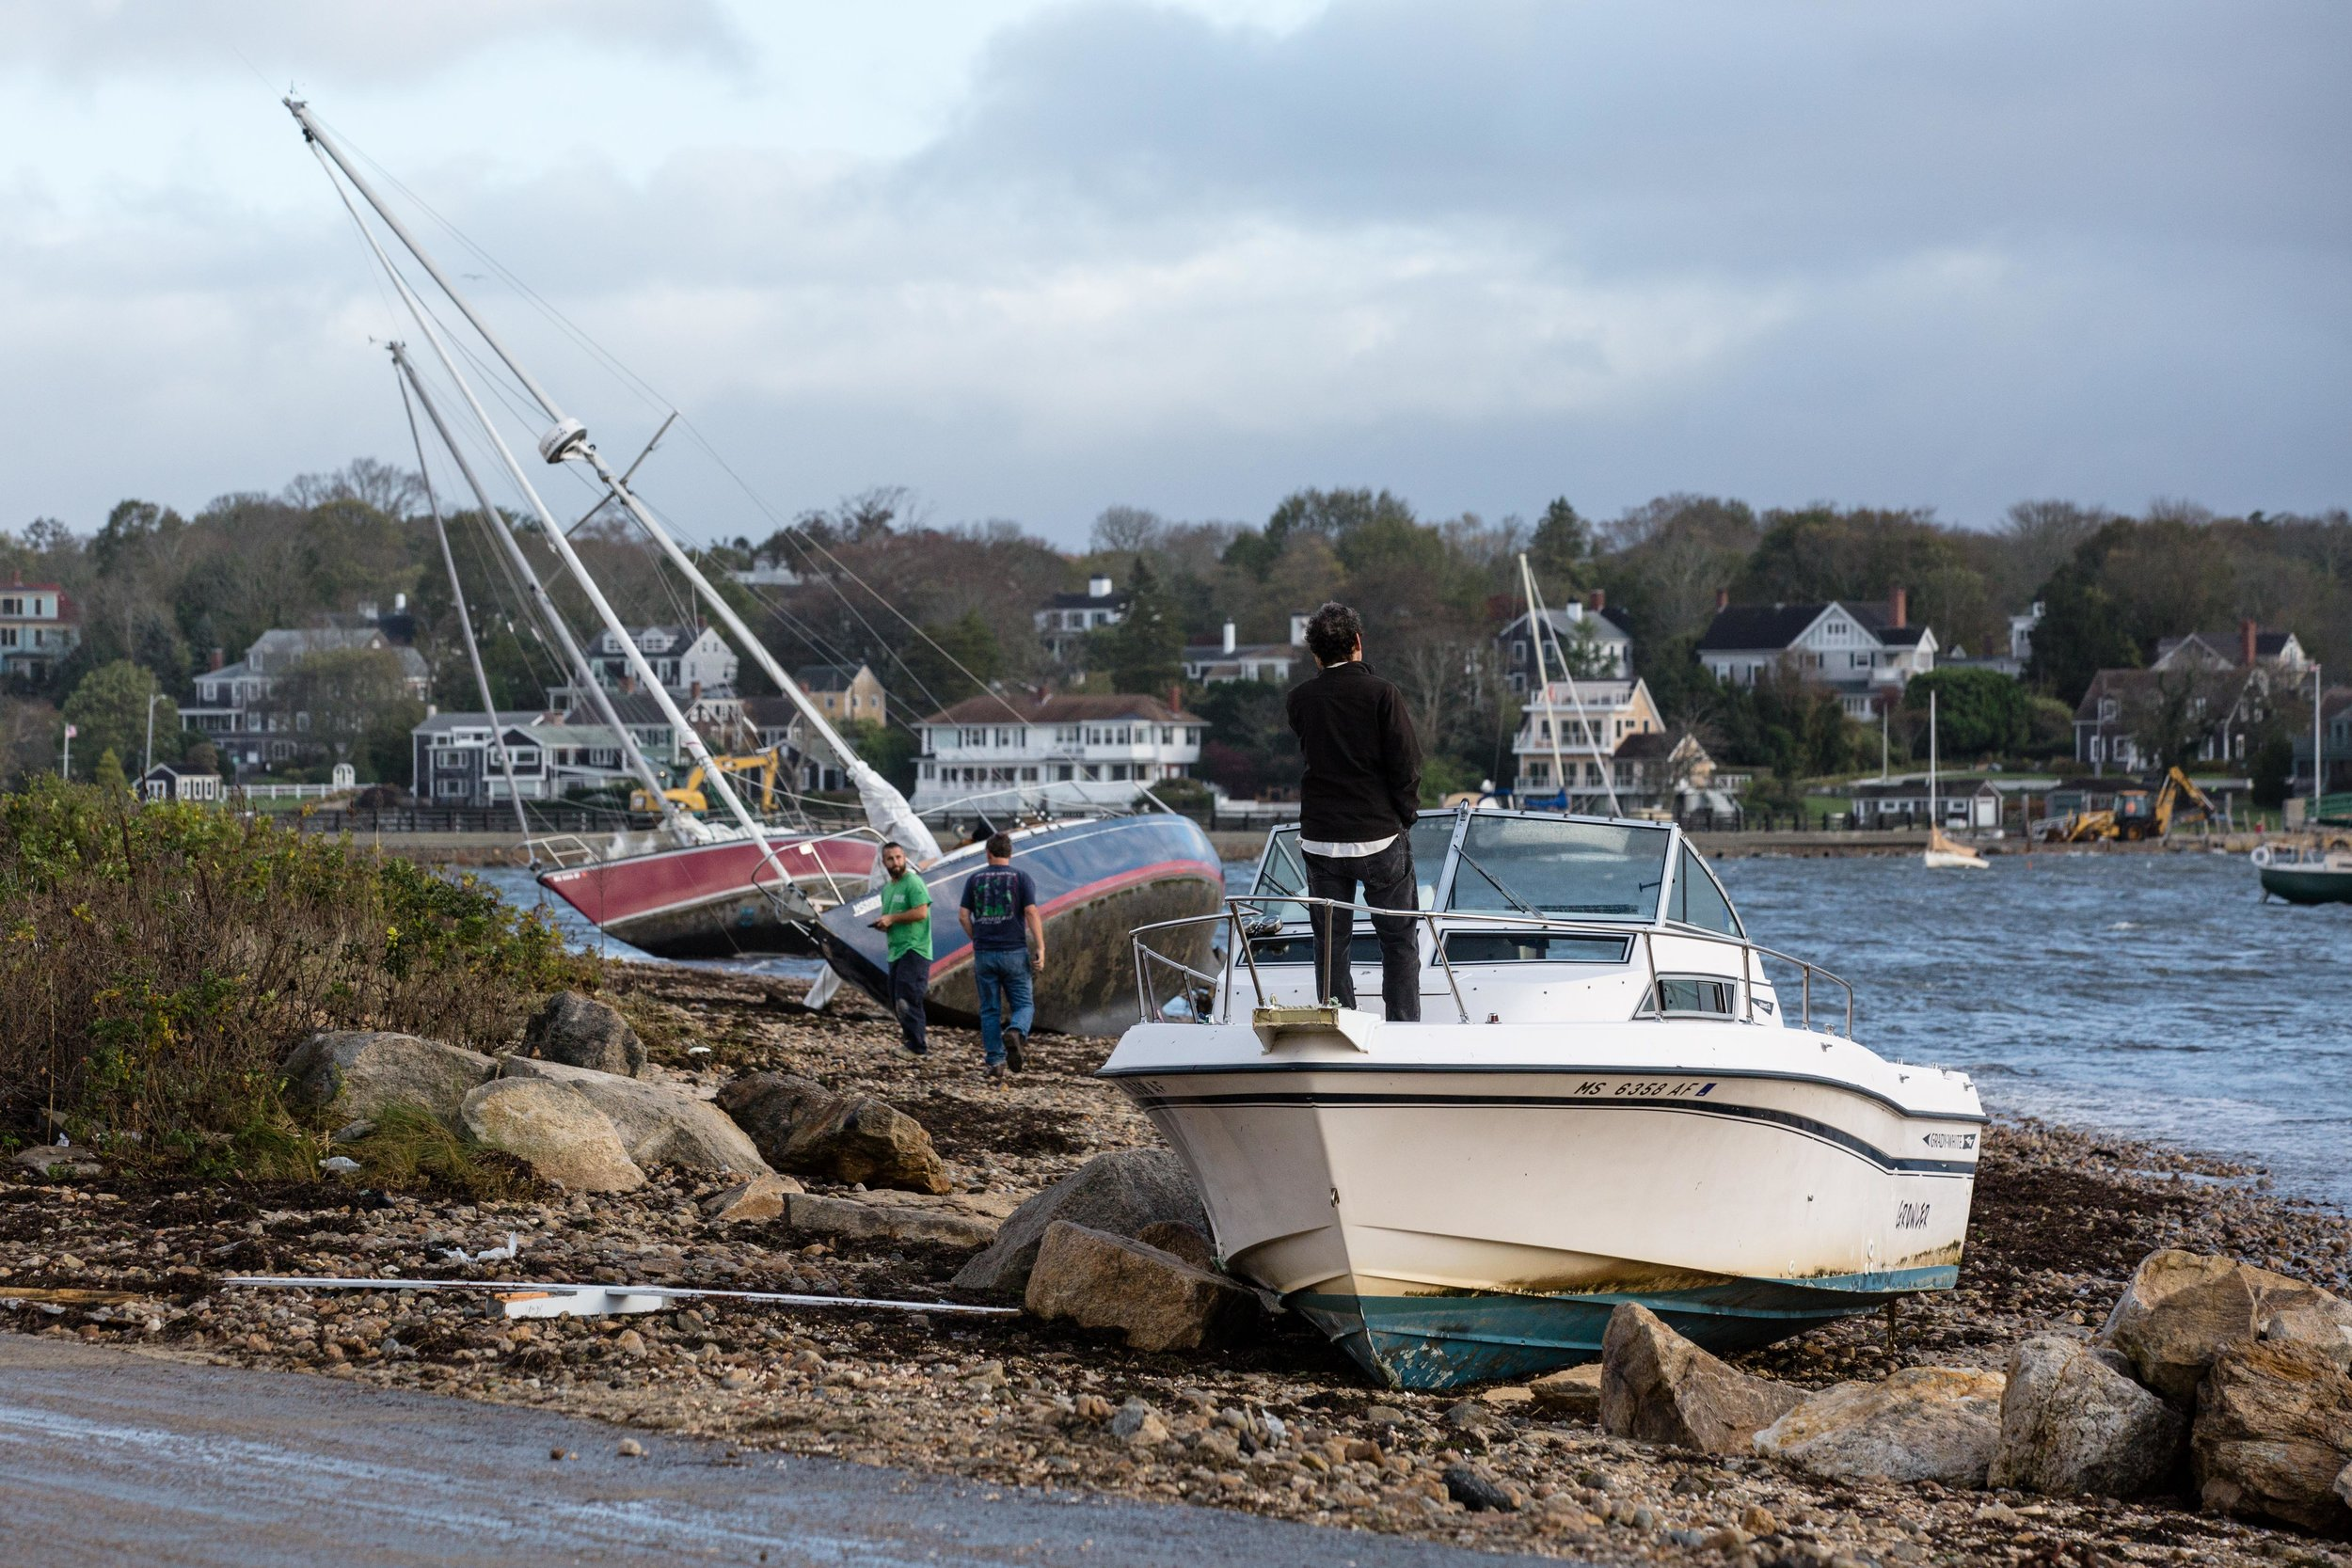 A man stands on the bow of his beached powerboat.